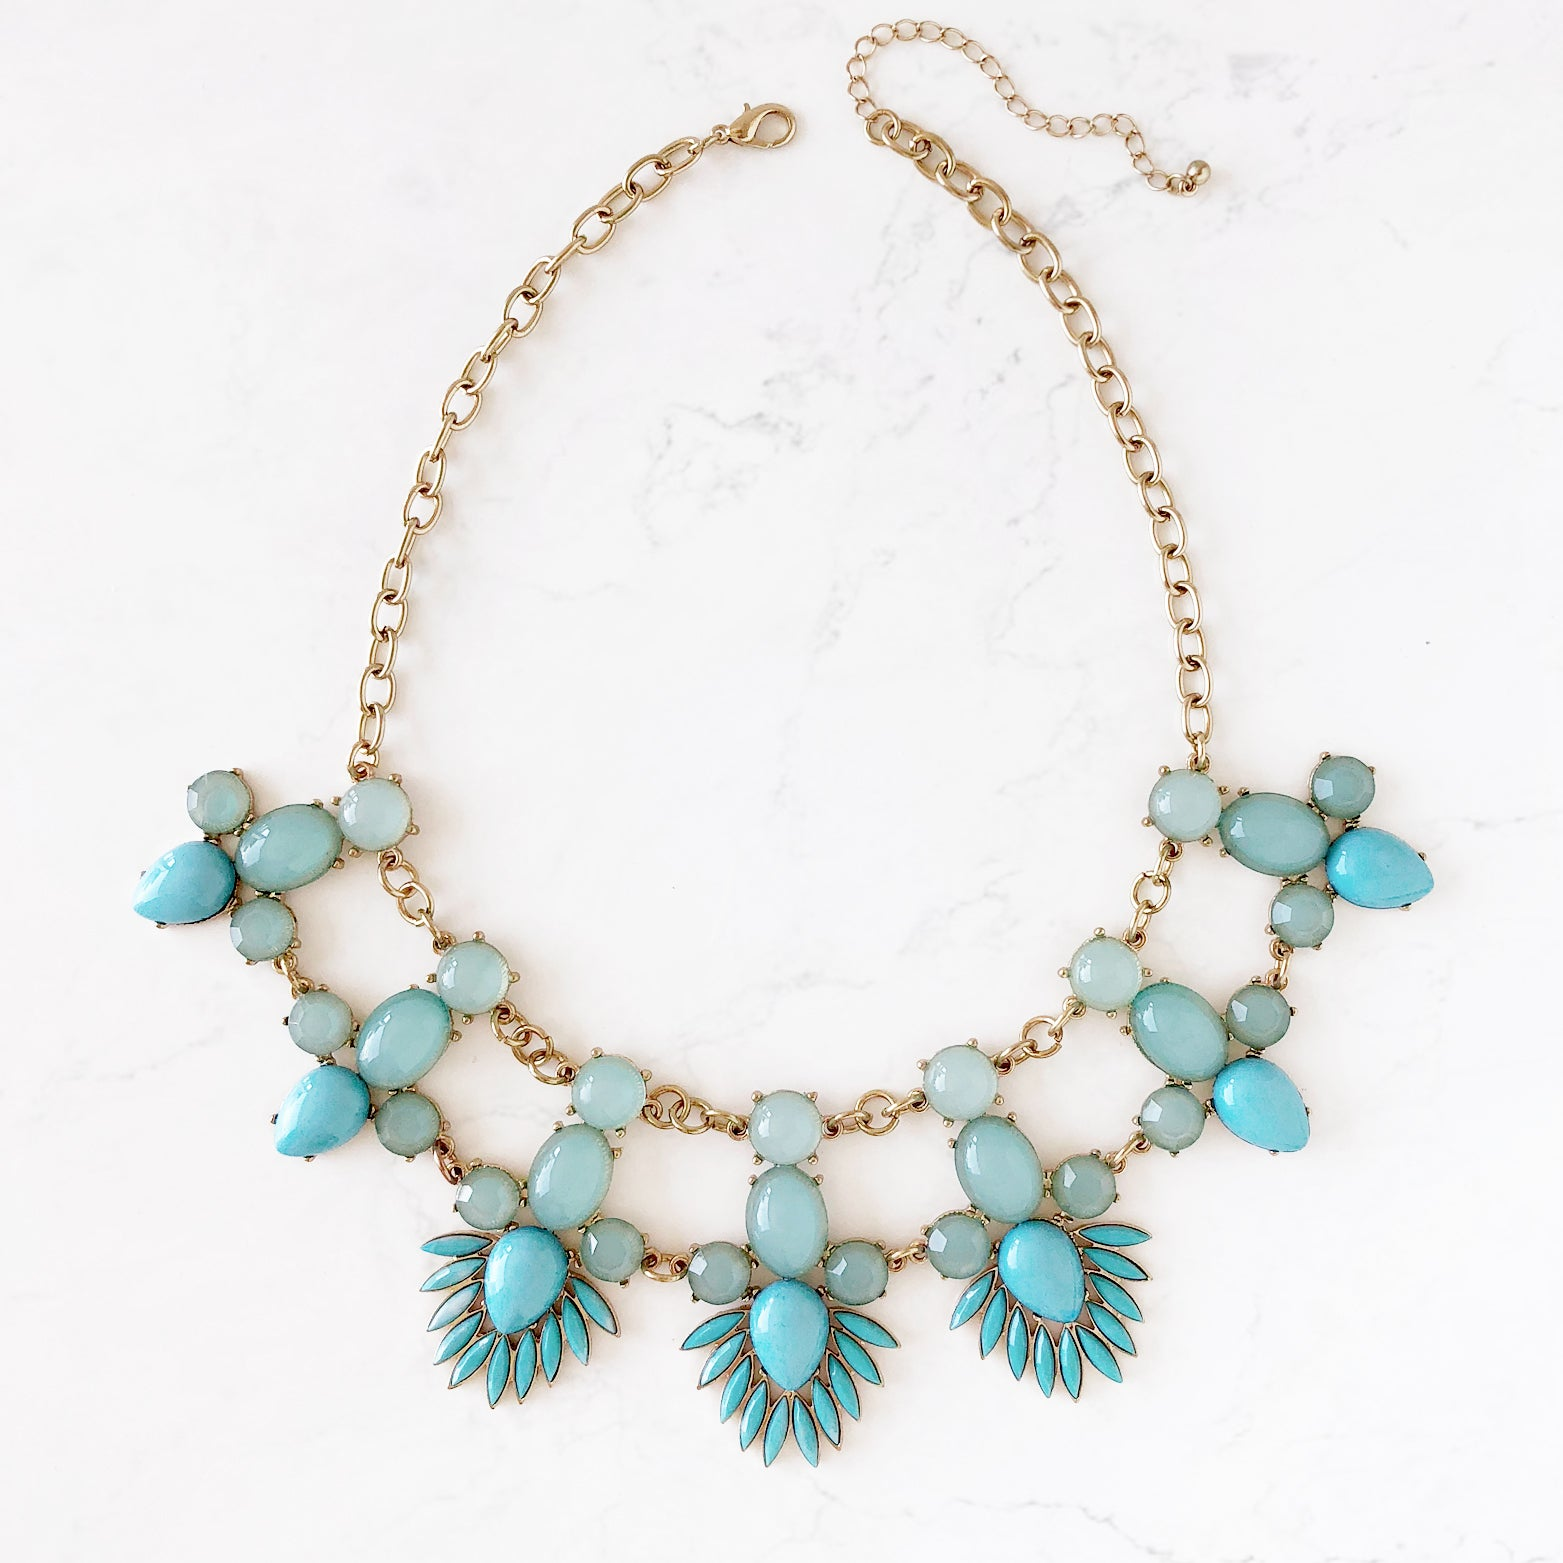 Vintage Tribal Statement Necklace